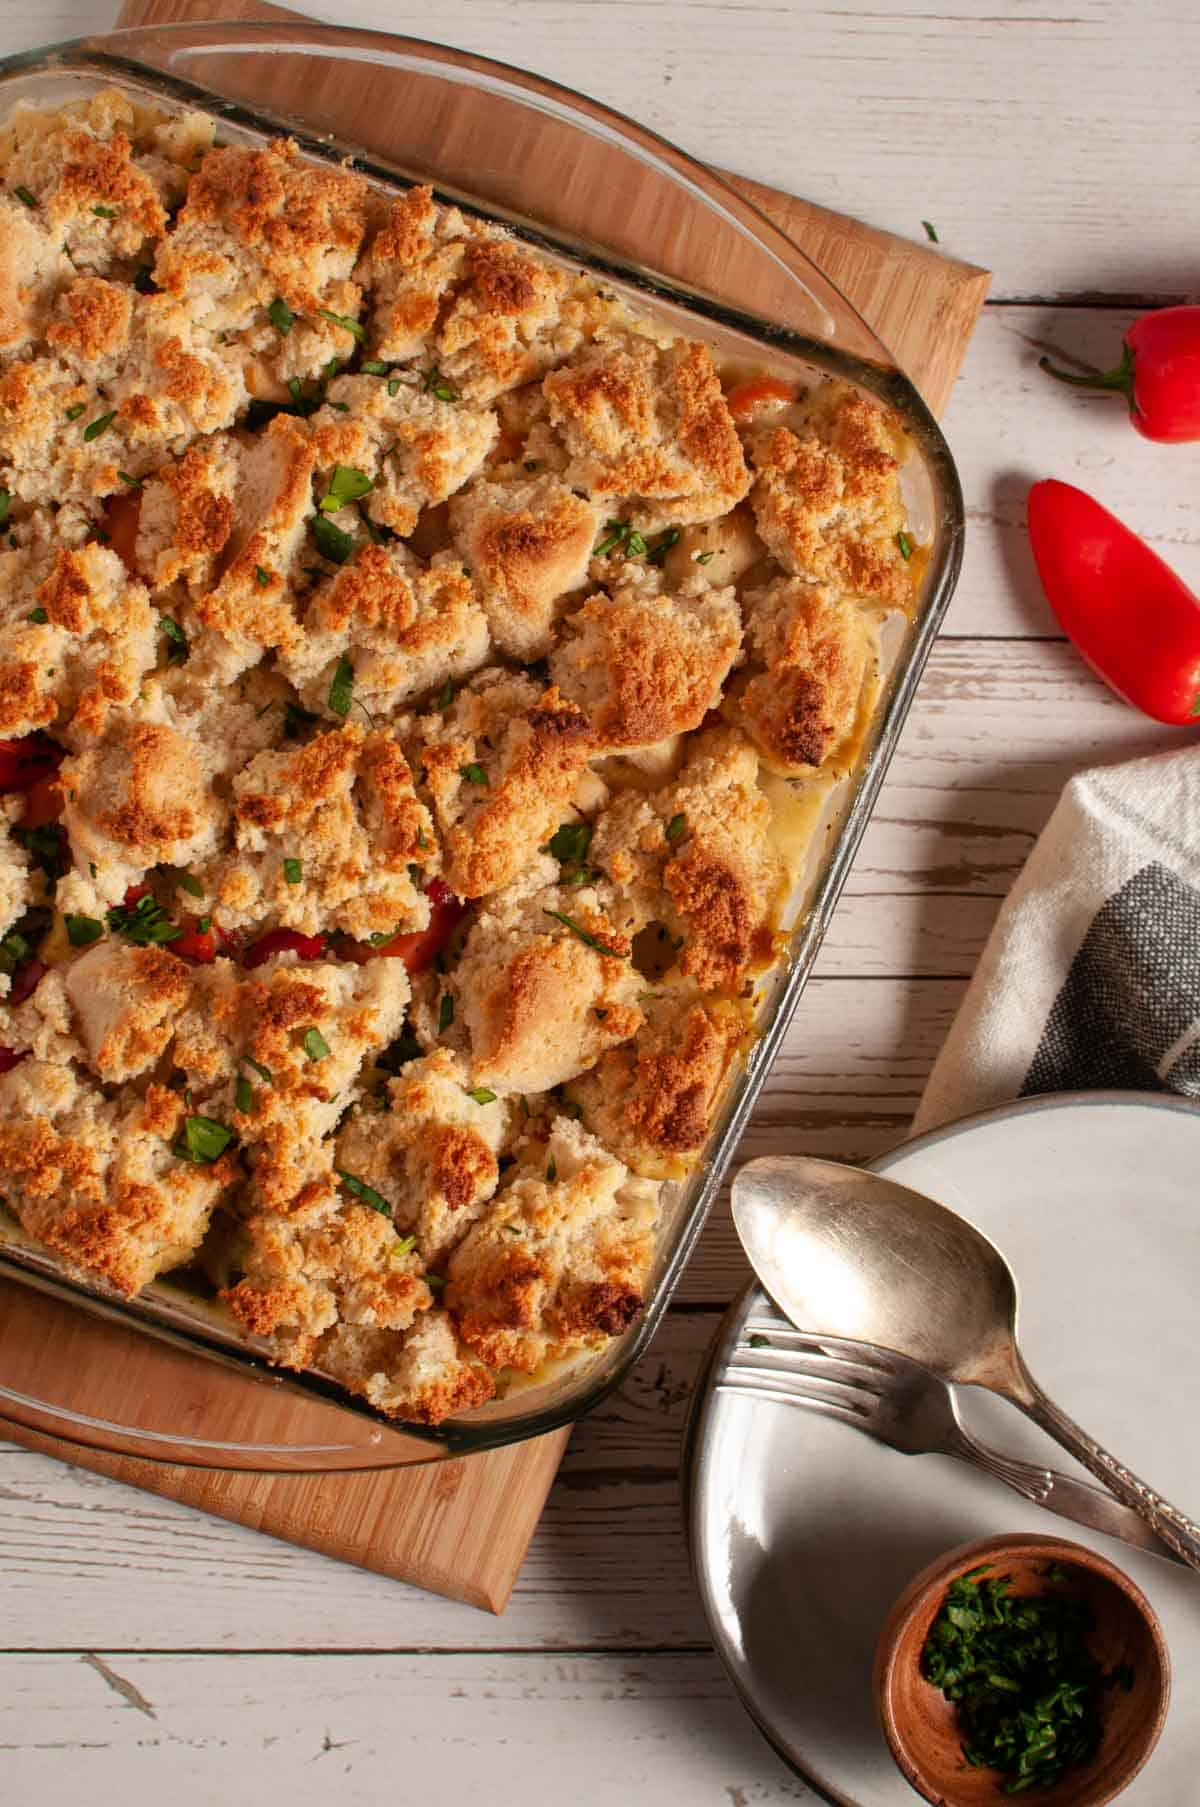 Grandma's Chicken and Biscuit Casserole